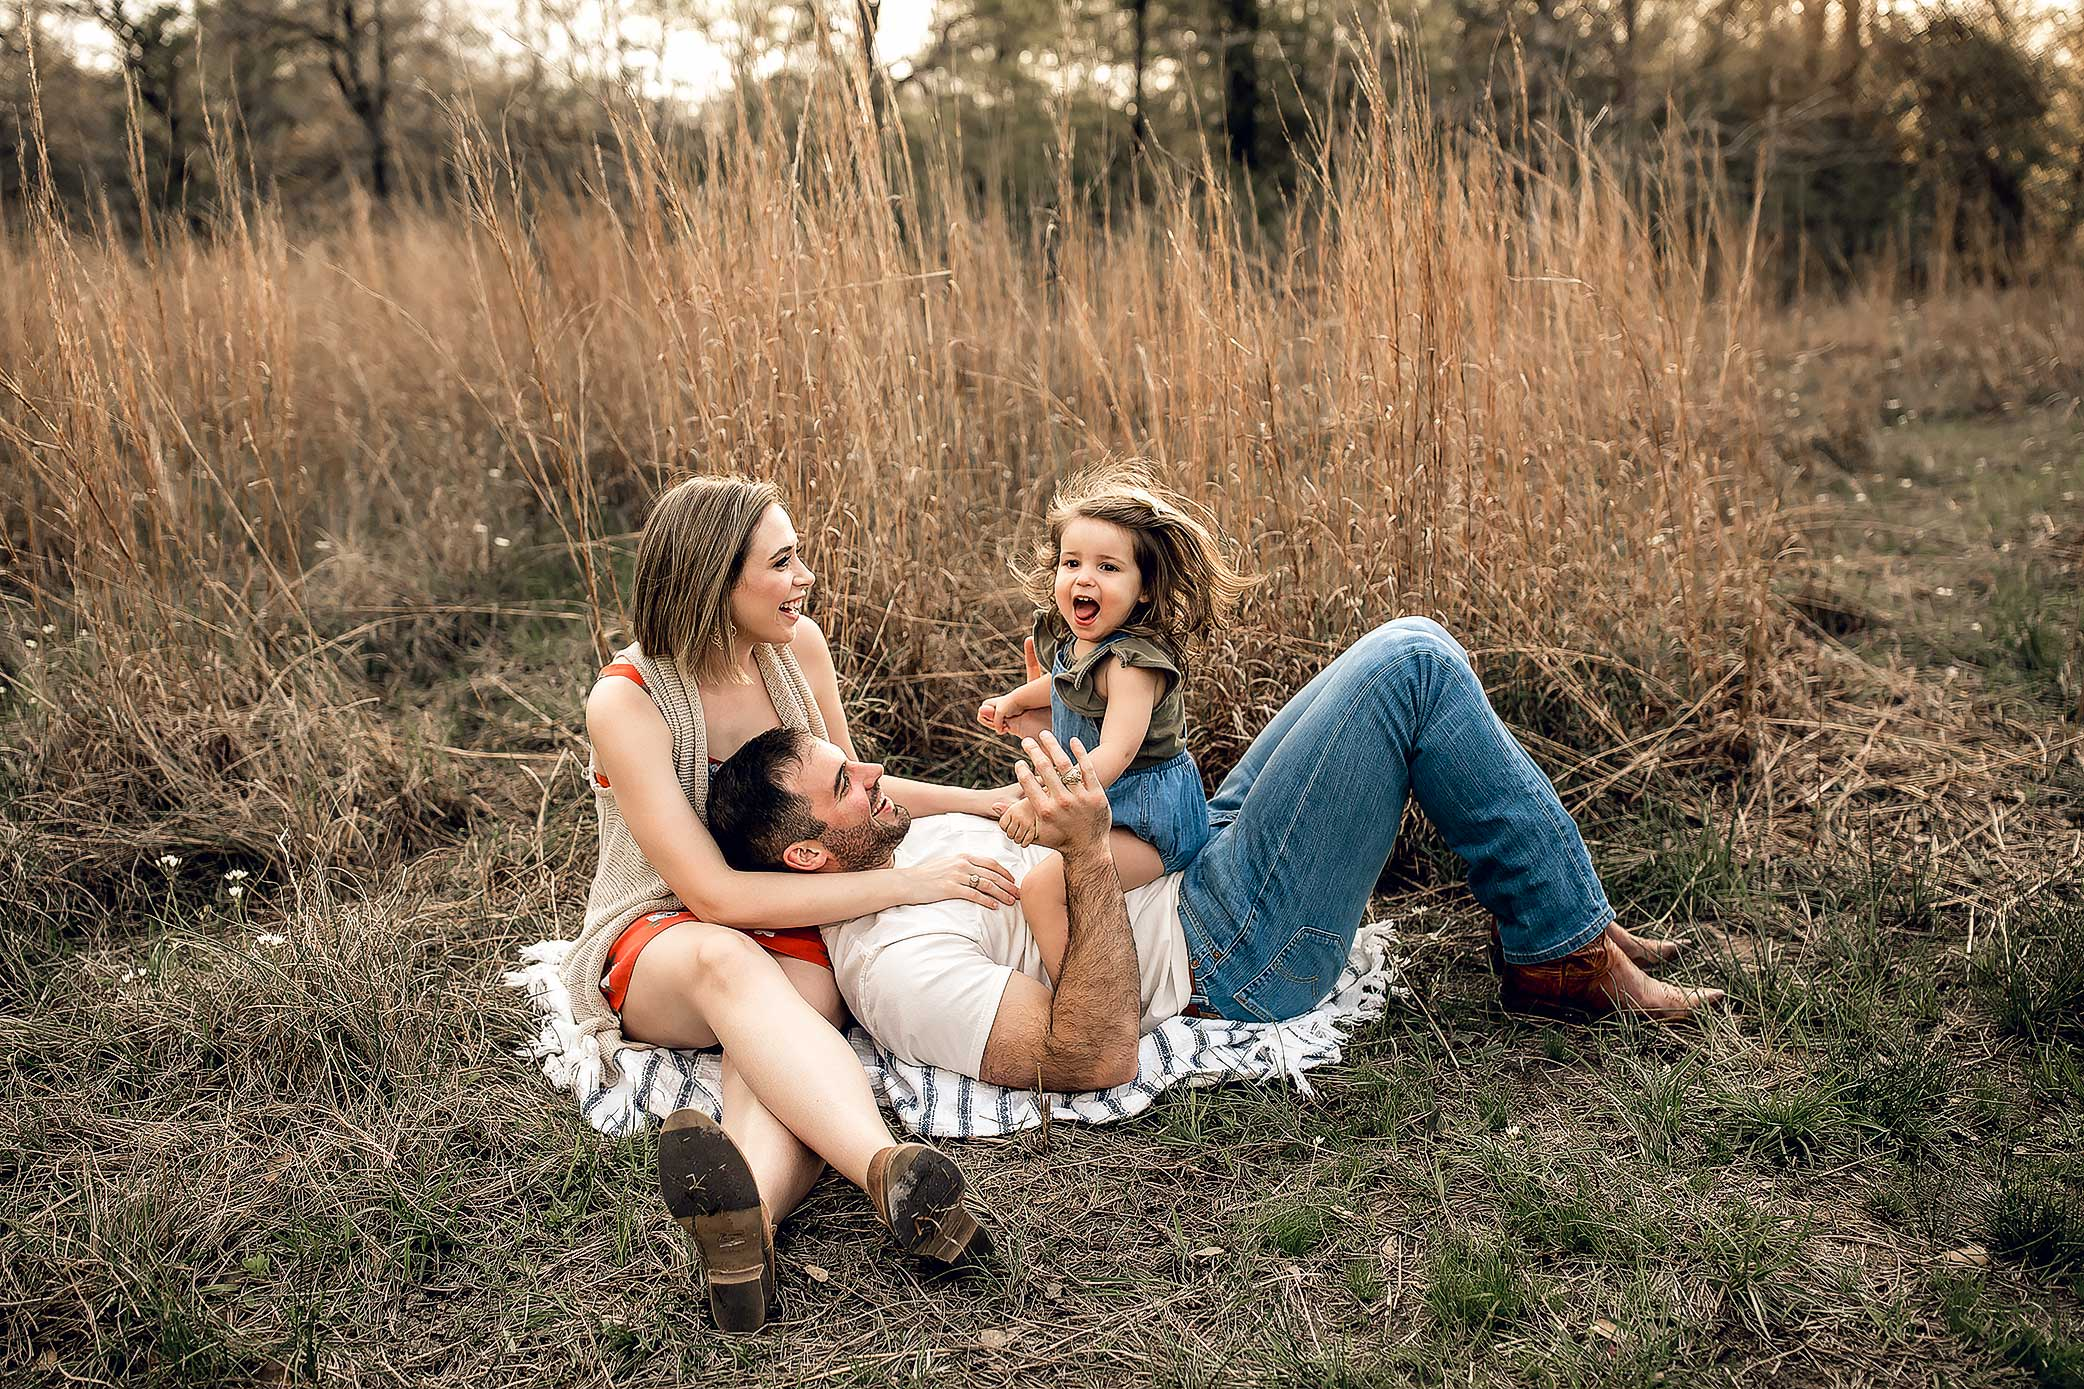 shelby-schiller-photography-sunset-family-pictures-spring-2019-9.jpg